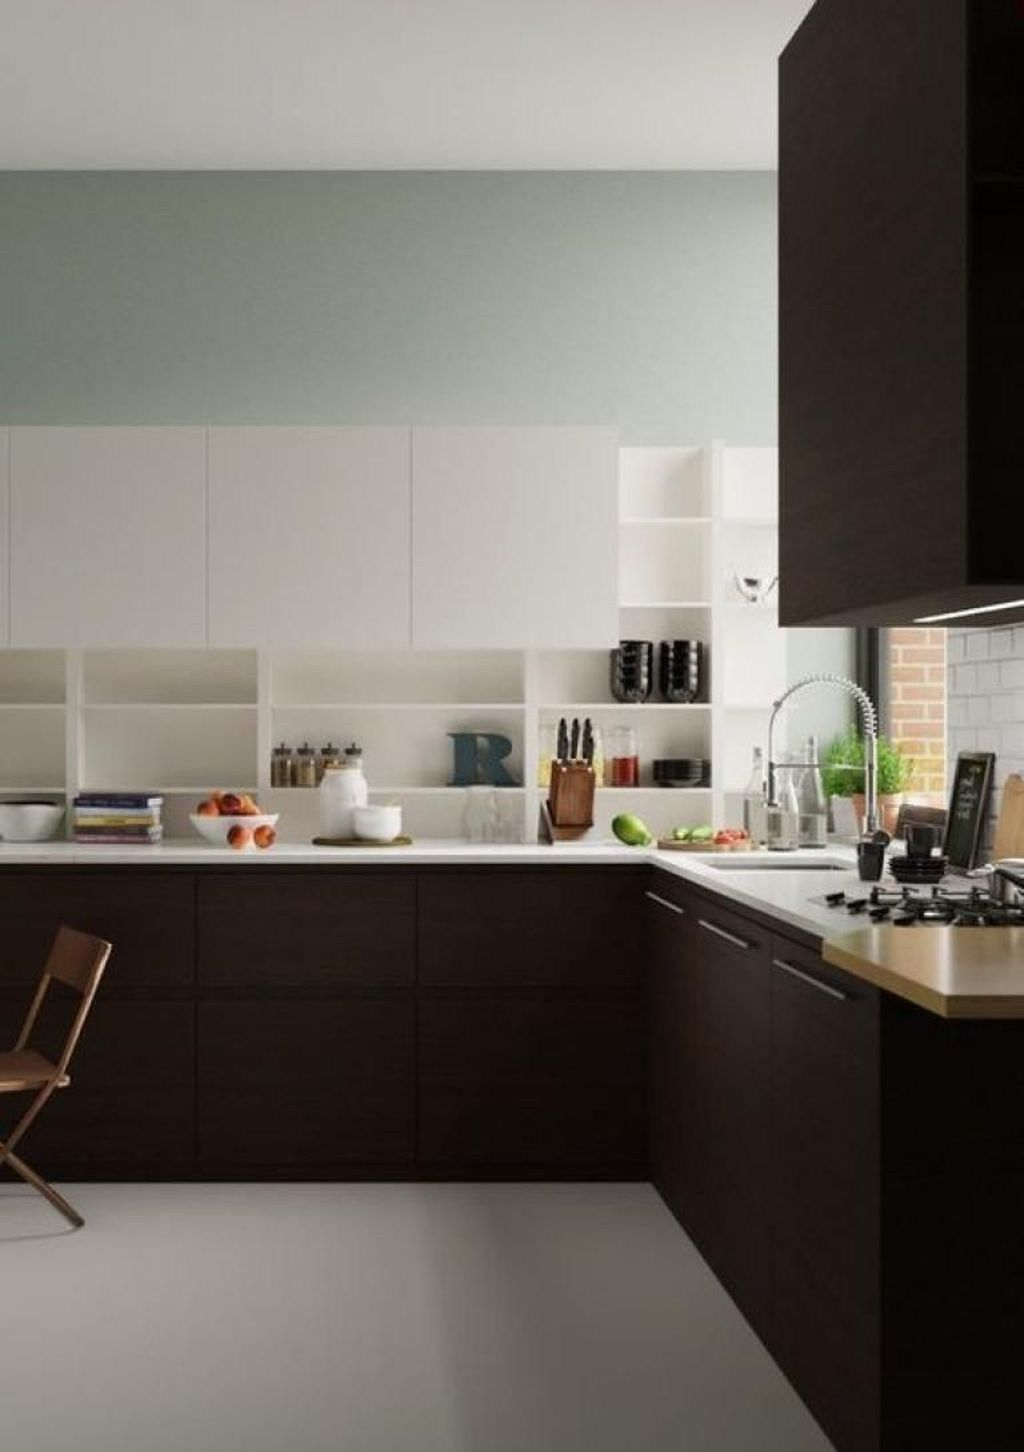 relaxing kitchen cabinet colour combinations ideas to try 01 kitchen cabinets color on kitchen cabinets color combination id=95757